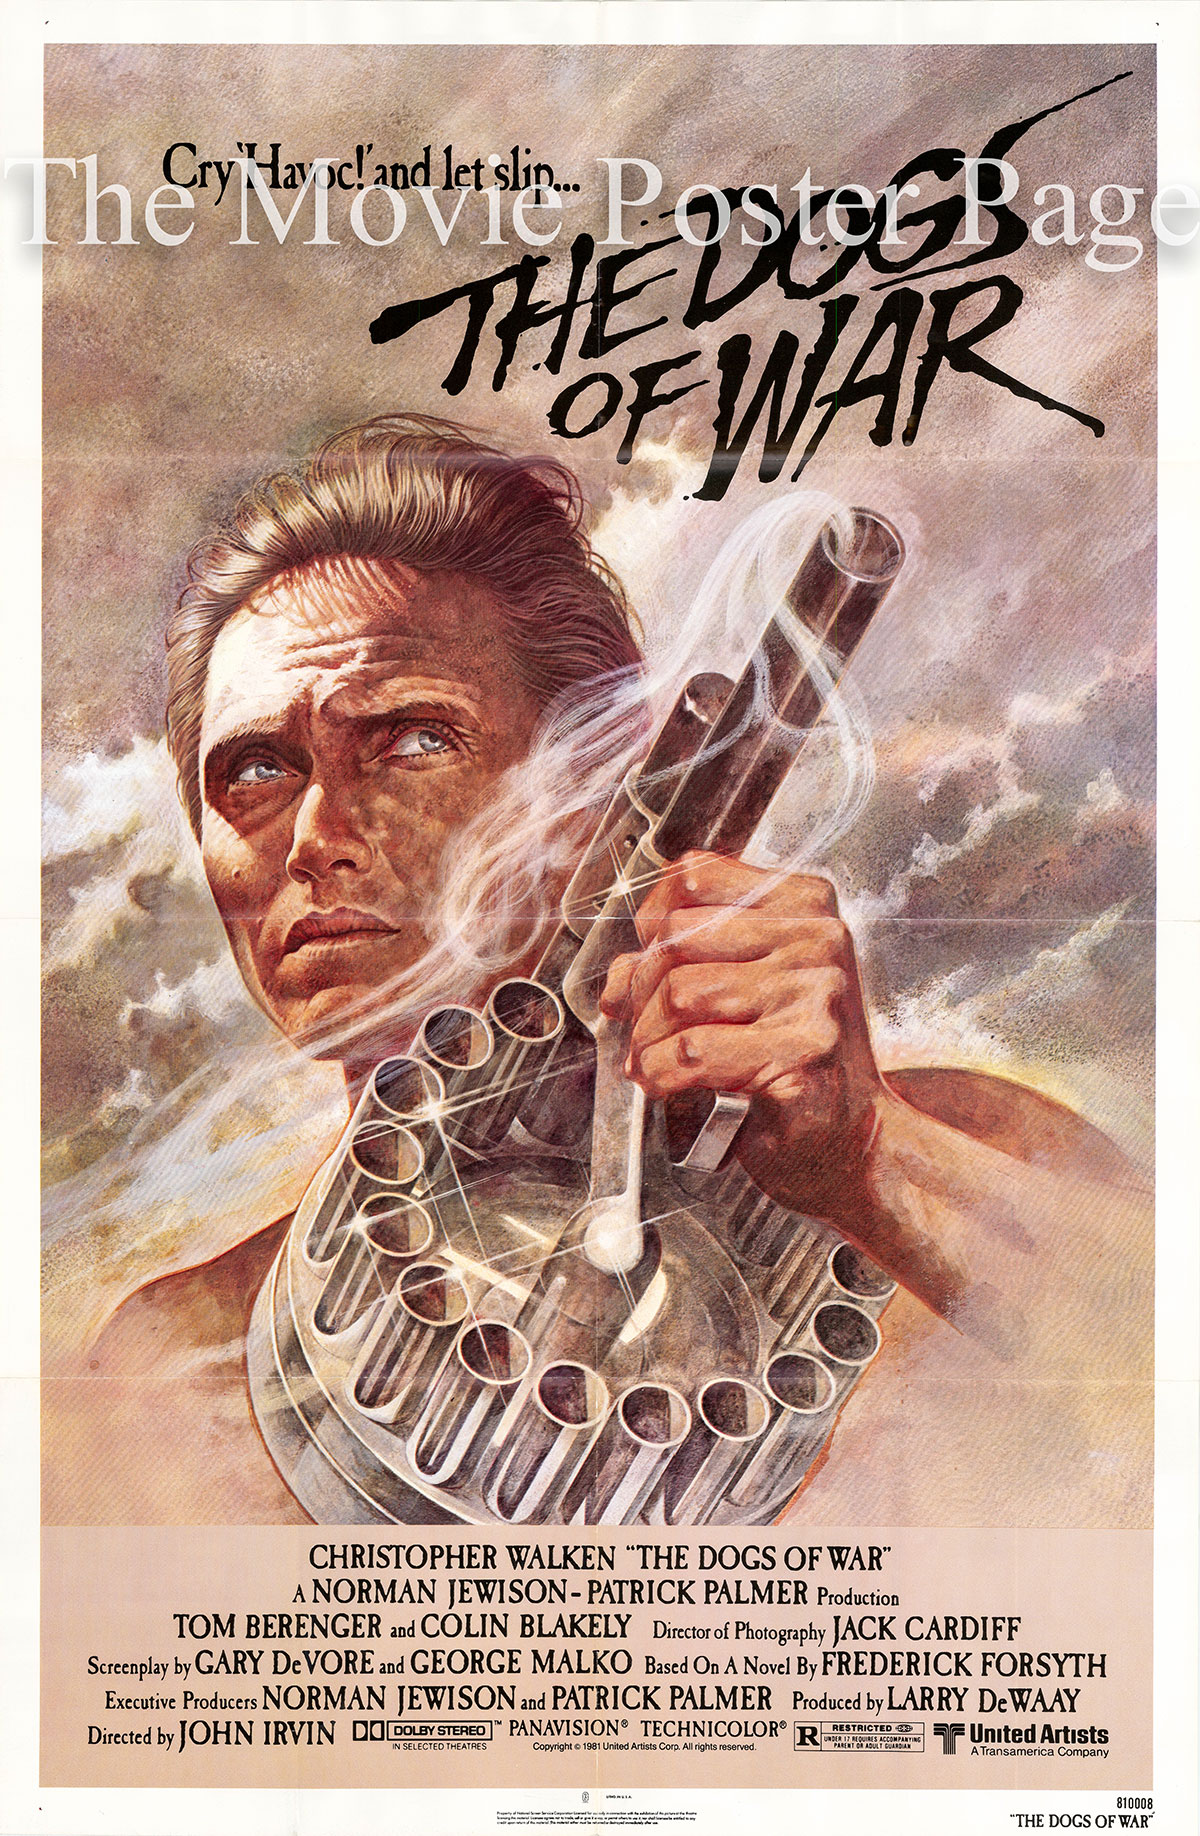 Pictured is a US one-sheet poster for the 1981 John Irvin film The Dogs of War starring Christopher Walken.